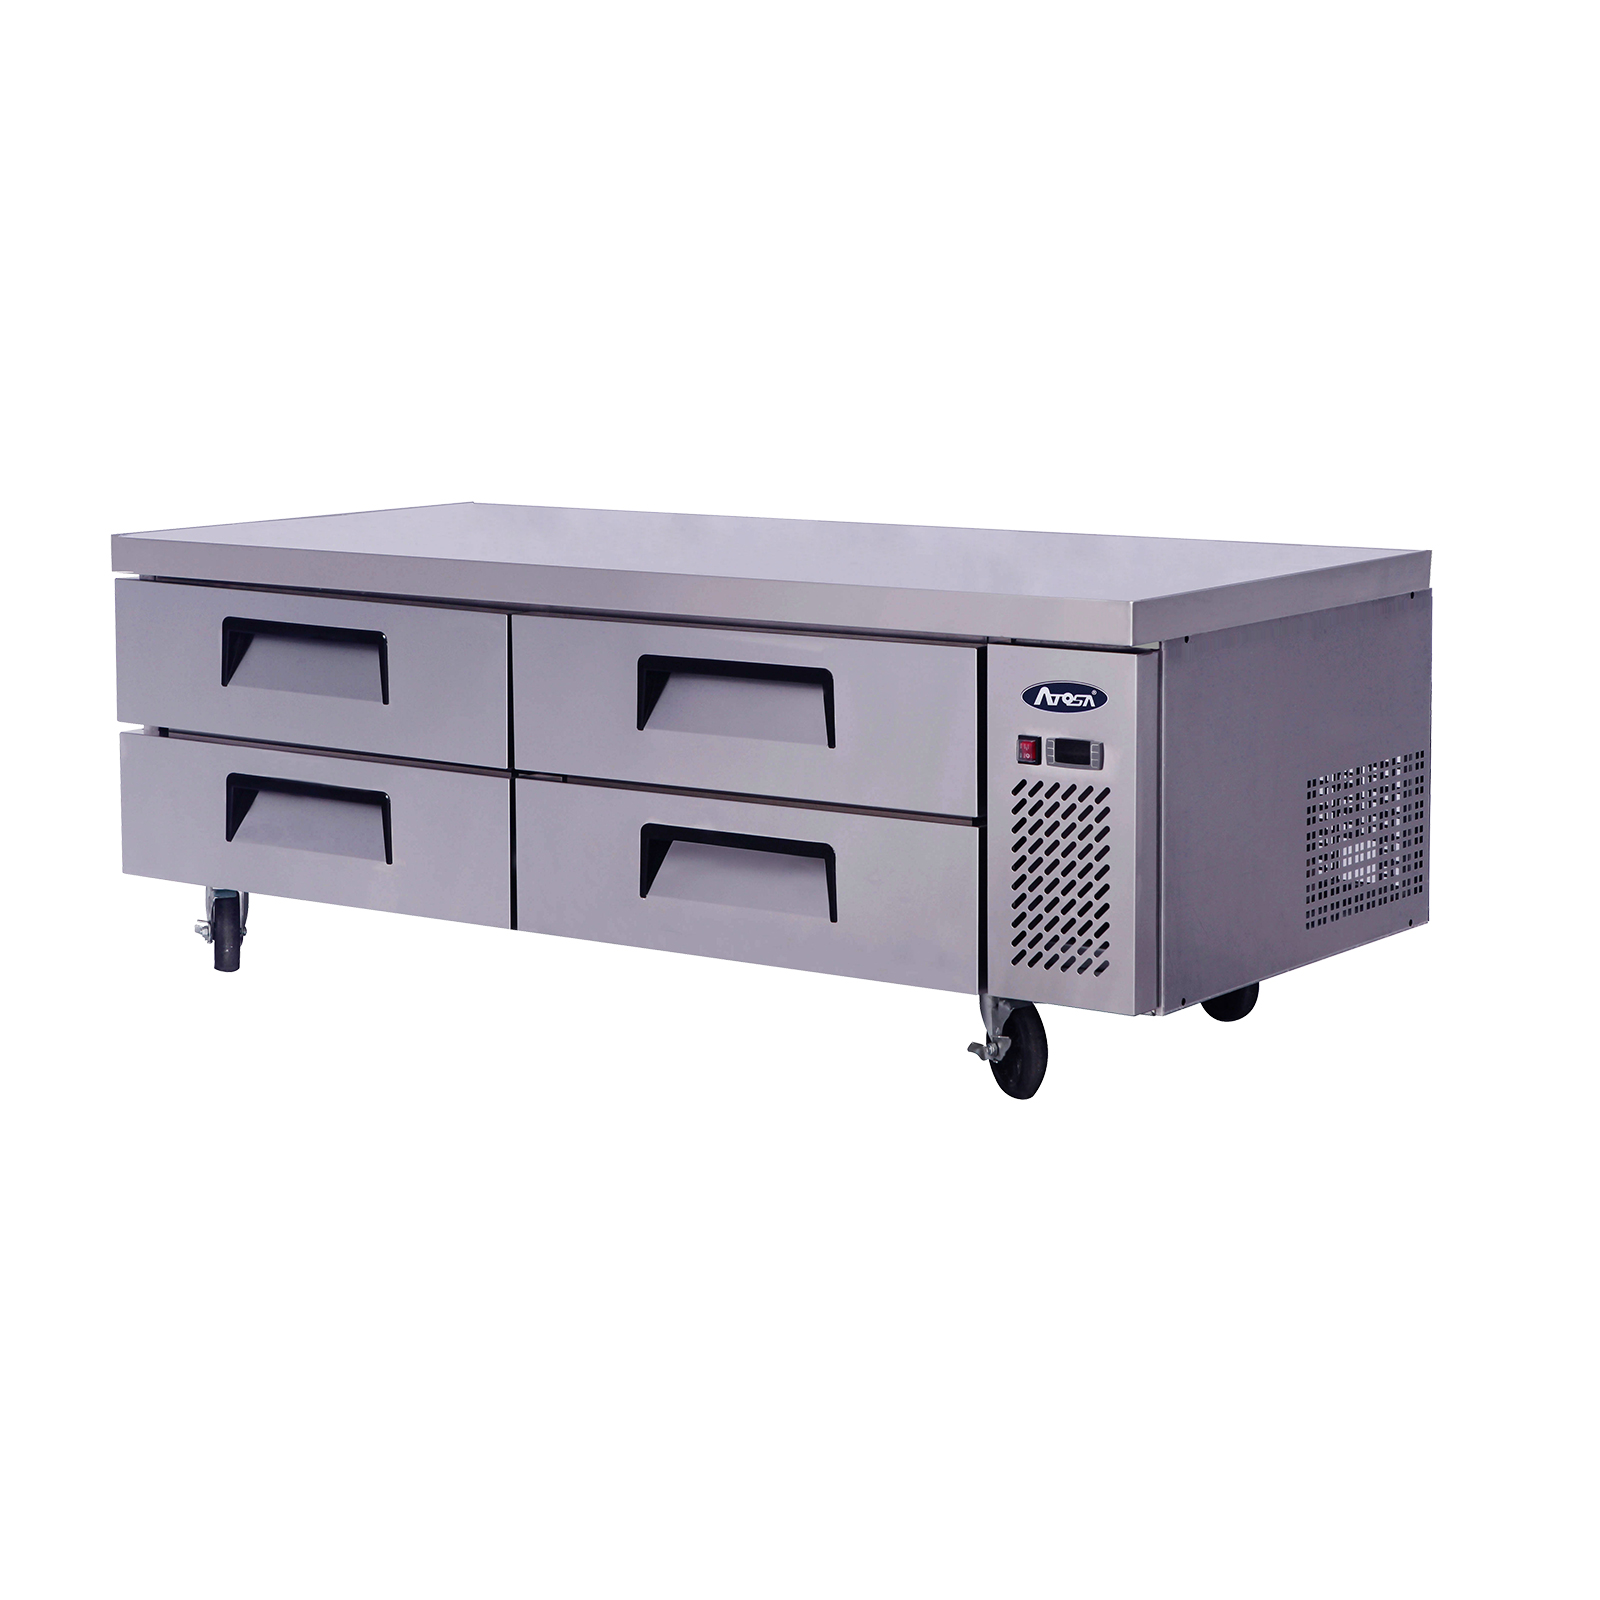 Atosa USA MGF8453GR equipment stand, refrigerated base